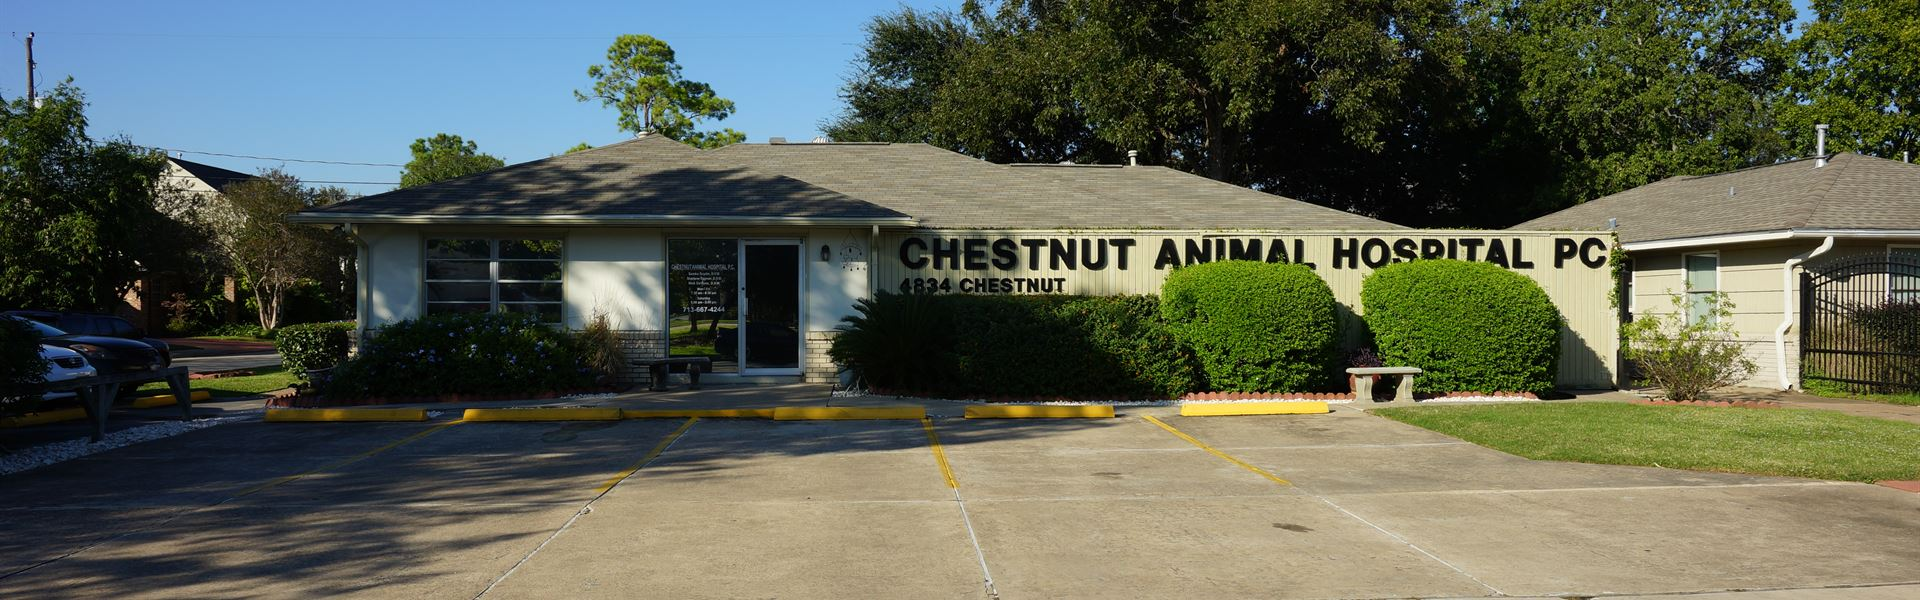 Chestnut Animal Hospital, P.C.